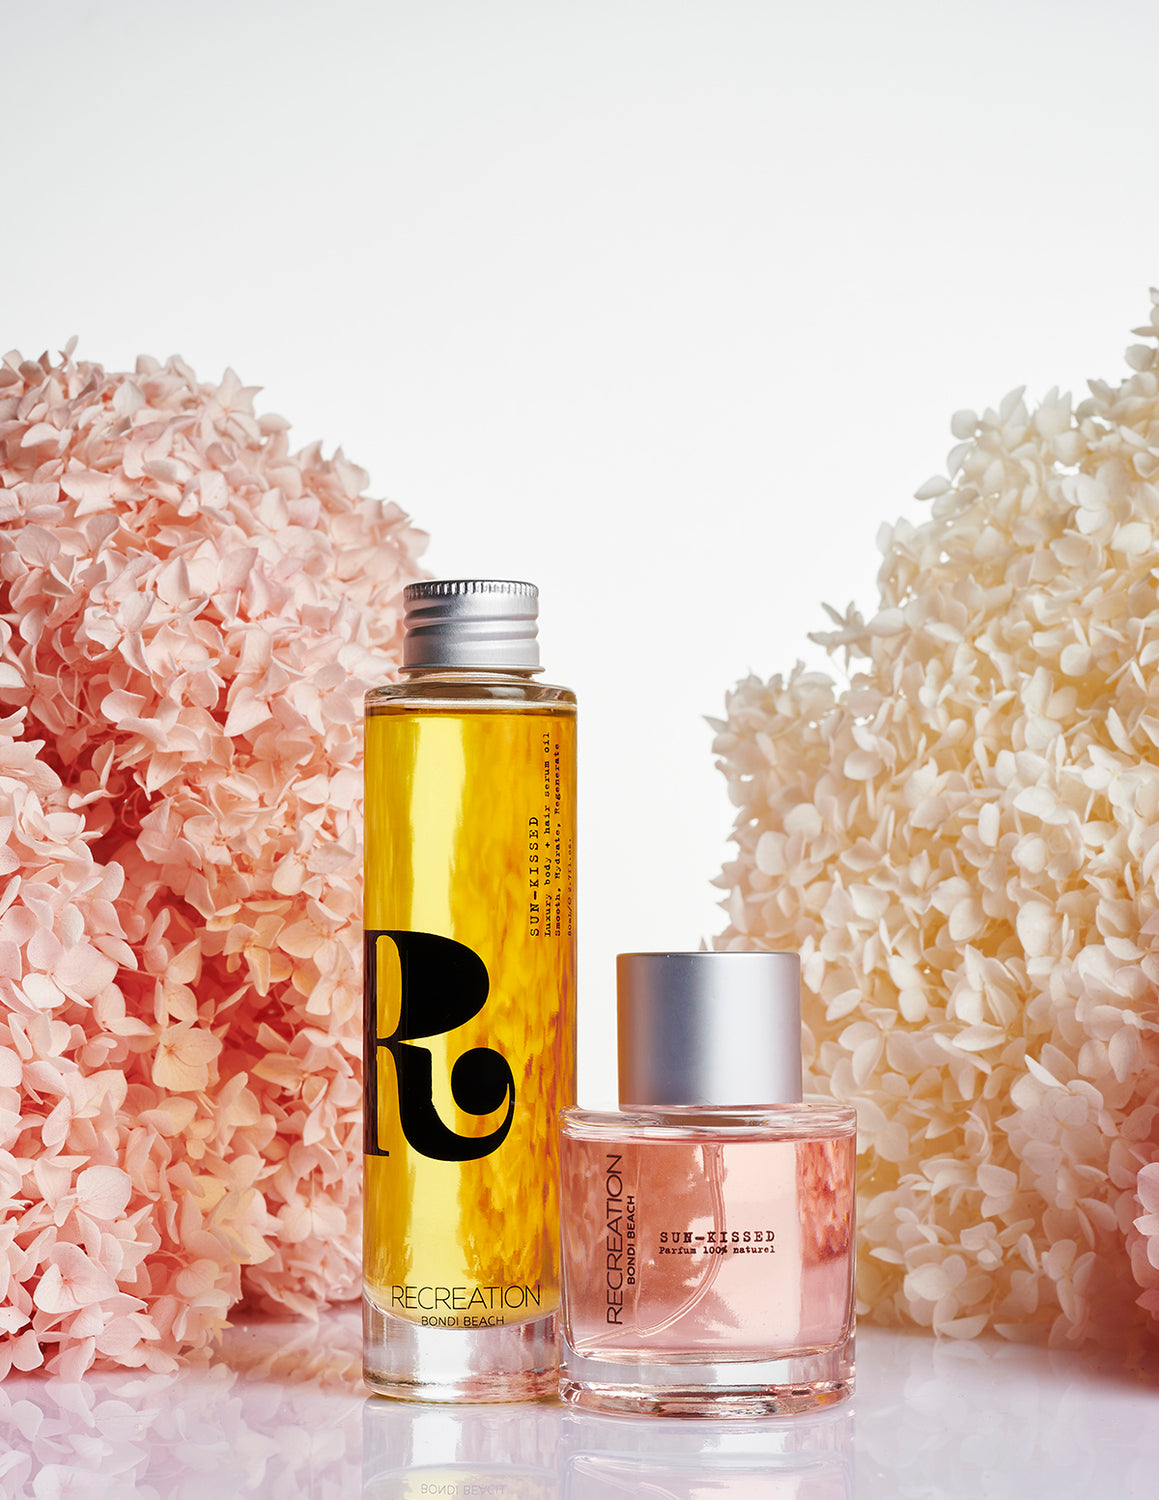 SUN-KISSED fig/citrus fragrance & Luxury body + hair serum oil set